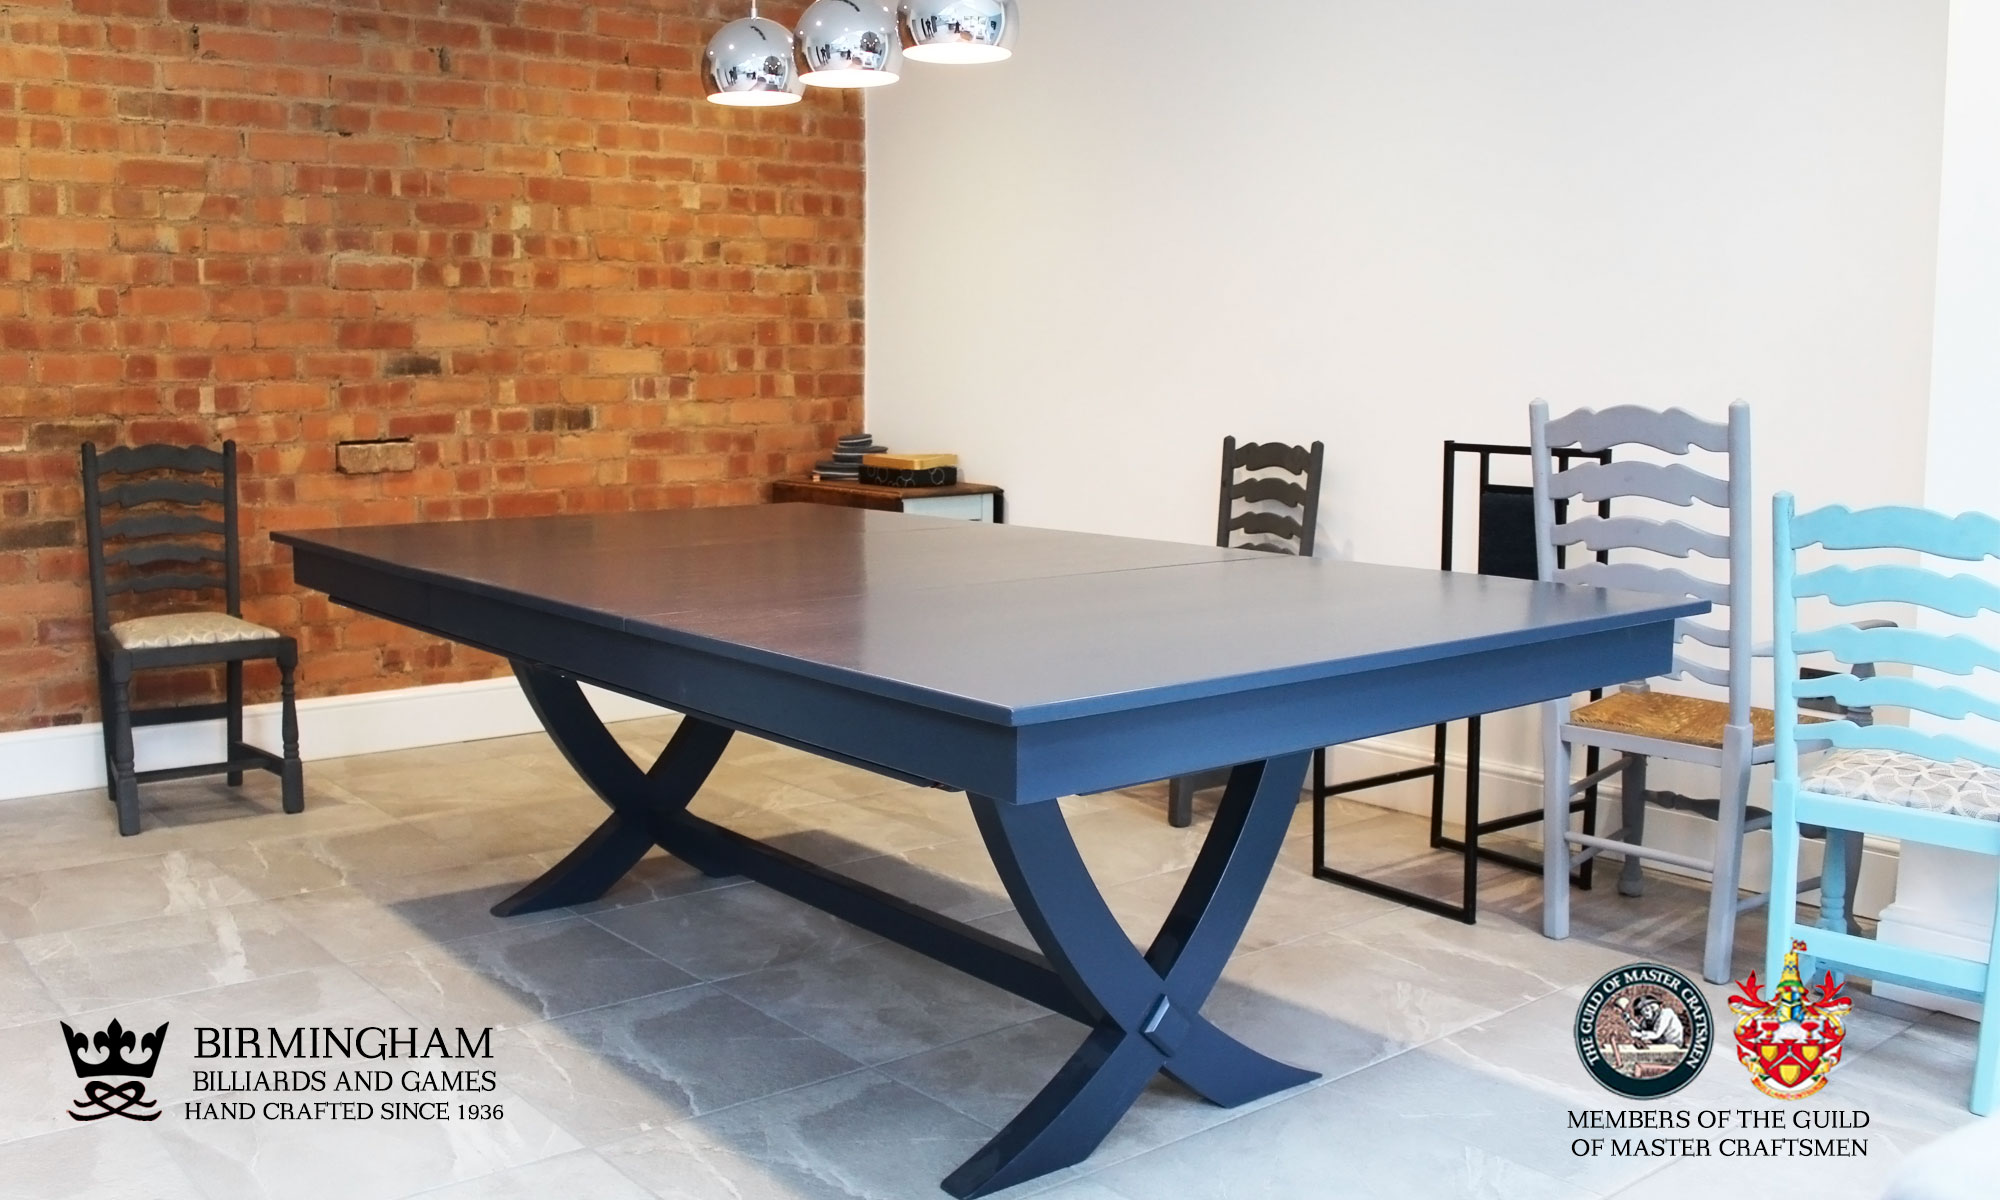 The X style snooker and pool dining table